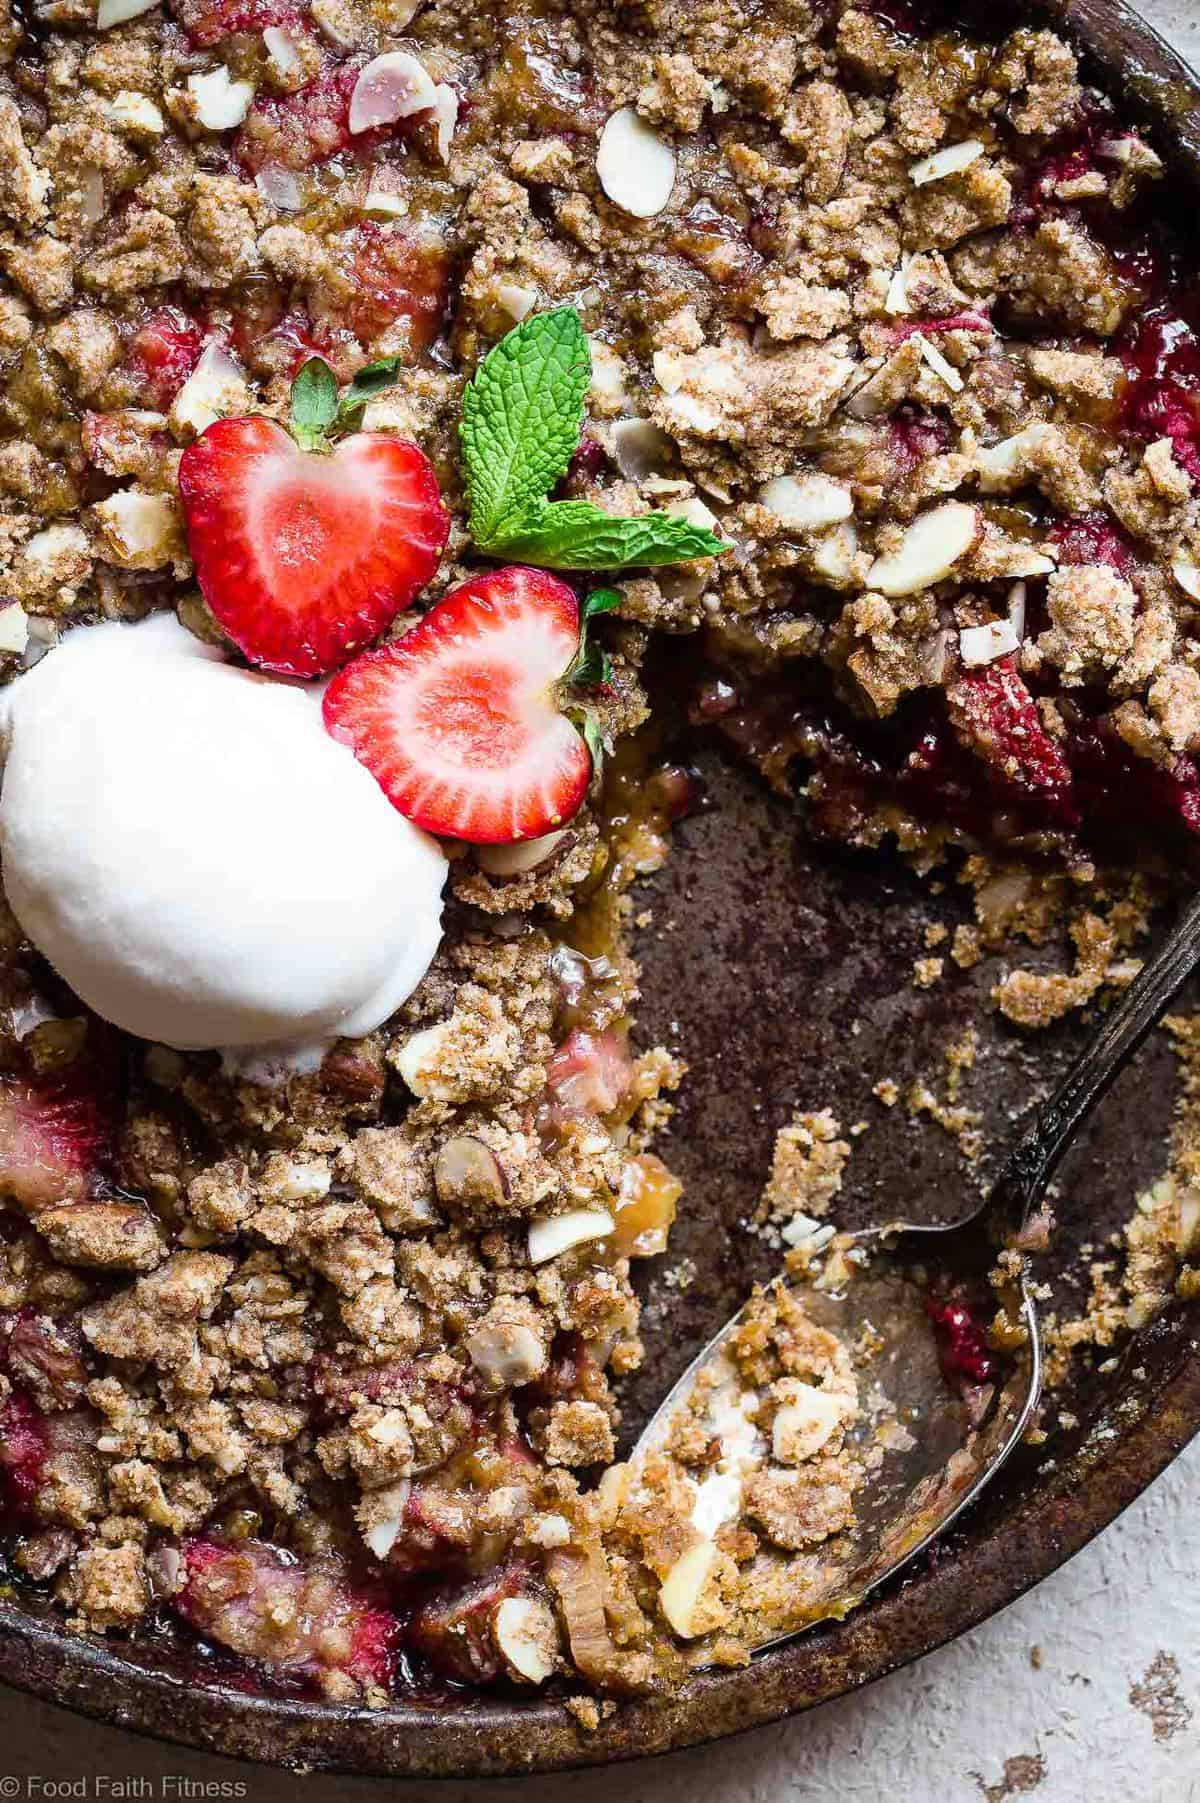 gluten free rhubarb crumble close-up in serving dish with spoon